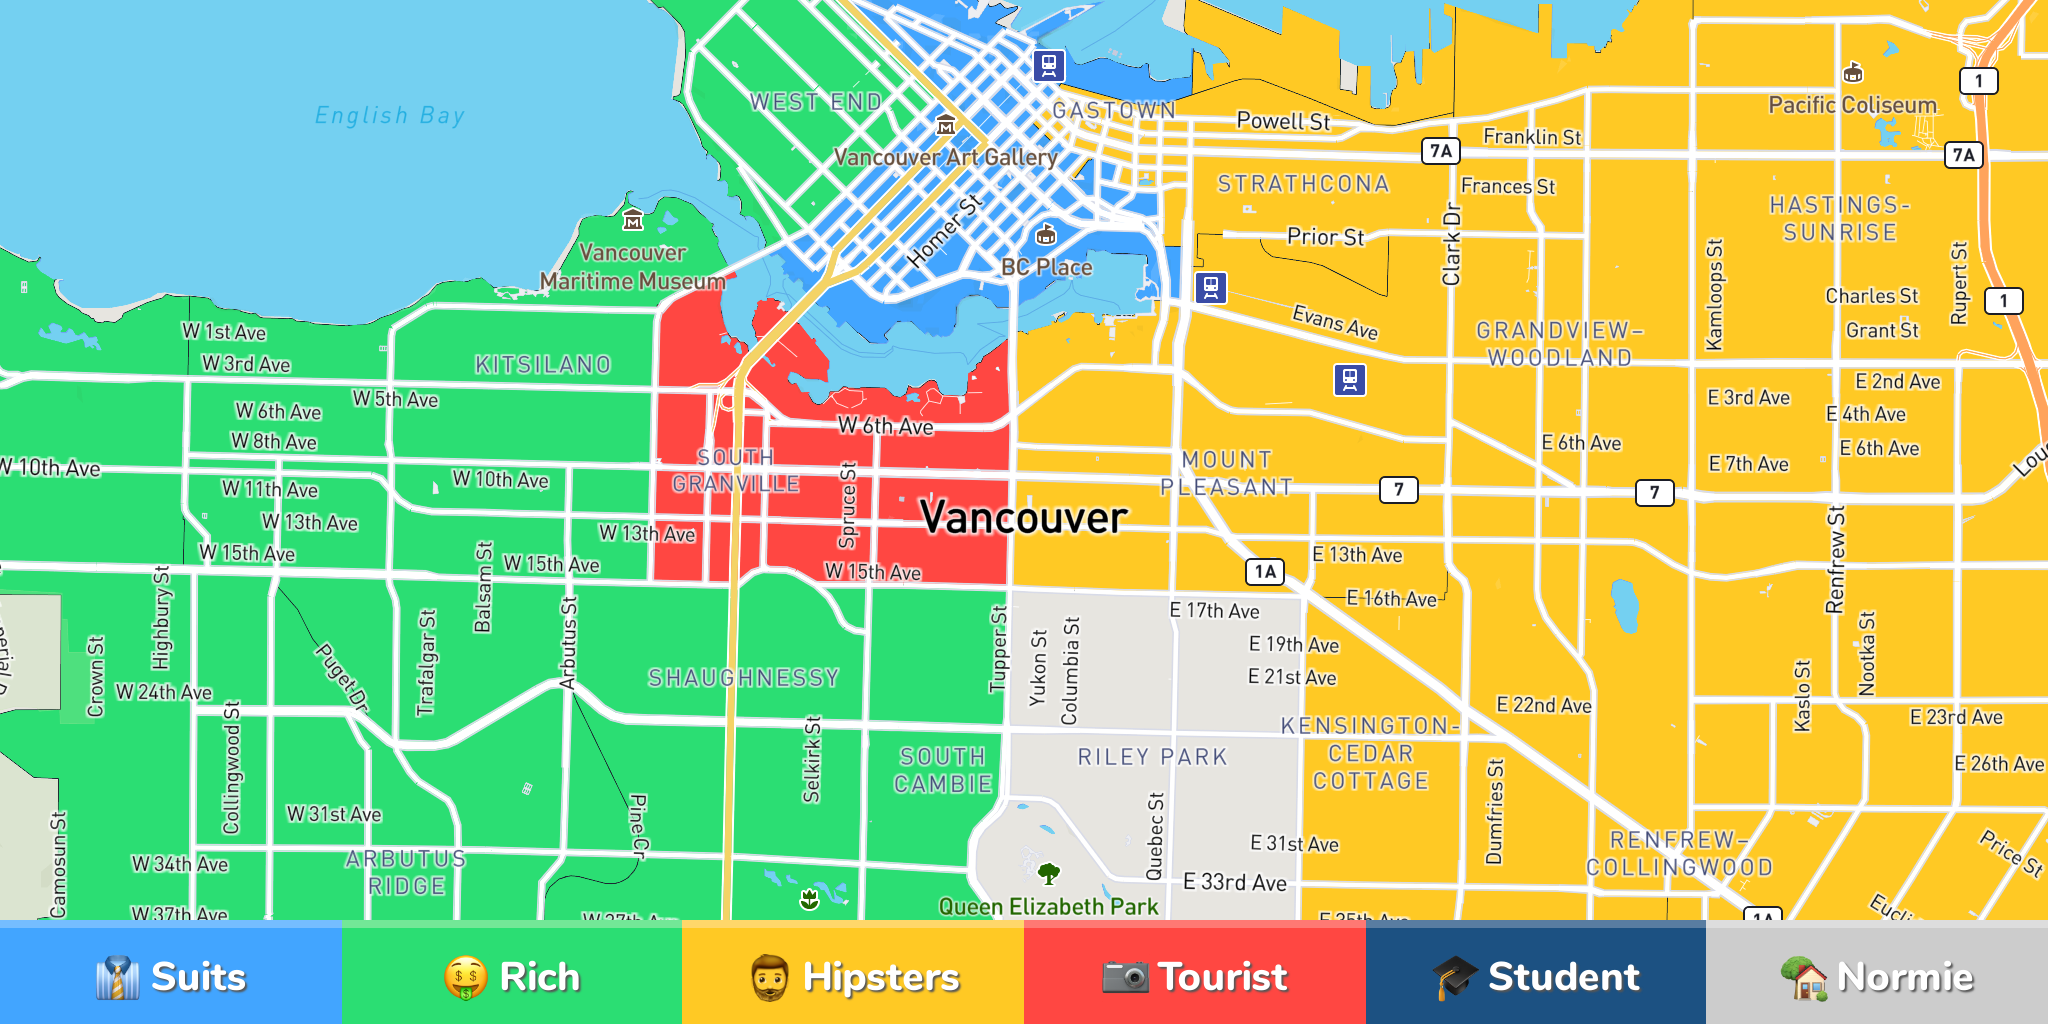 Judgemental map of vancouver